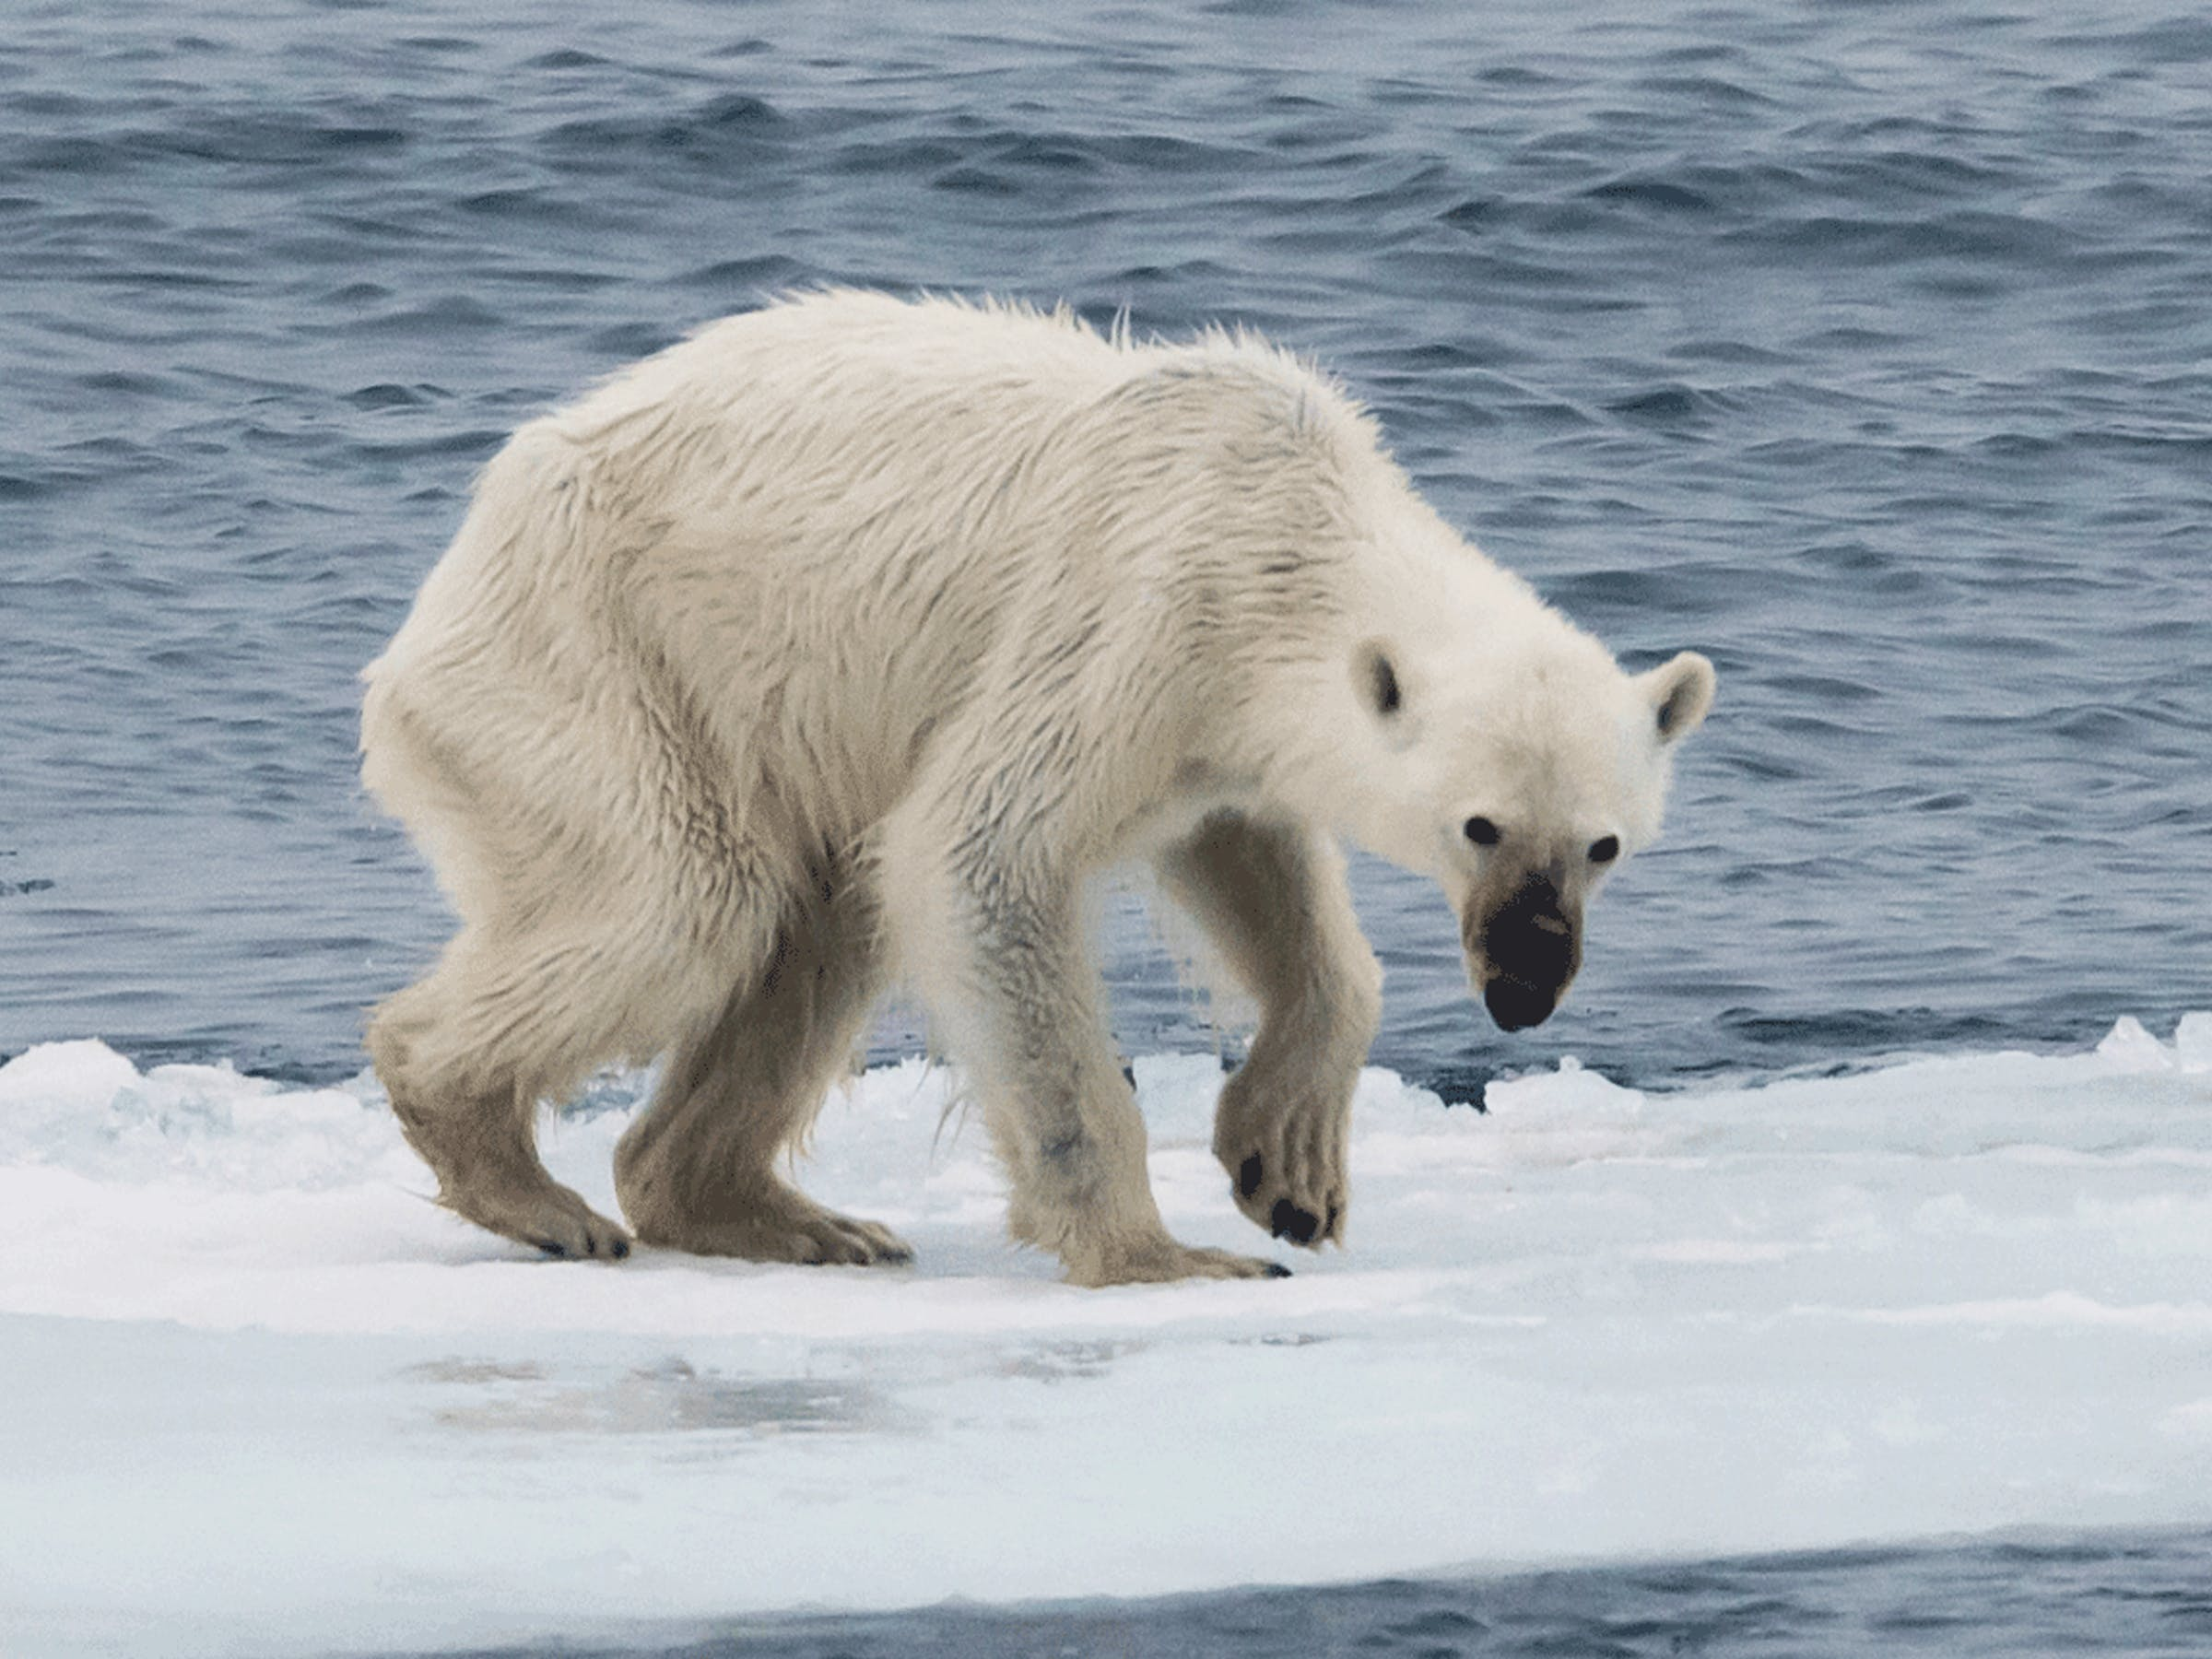 In summer, some polar bears do not make the transition from their winter residence on the Svalbard islands to the dense drift ice and pack ice of the high arctic where they would find a plethora of prey. This is due to global climate change which causes the ice around the islands to melt much earlier than previously. The bears need to adapt from their proper food to a diet of detritus, small animals, bird eggs and carcasses of marine animals. Very often they suffer starvation and are doomed to die. The number of these starving animals is sadly increasing.